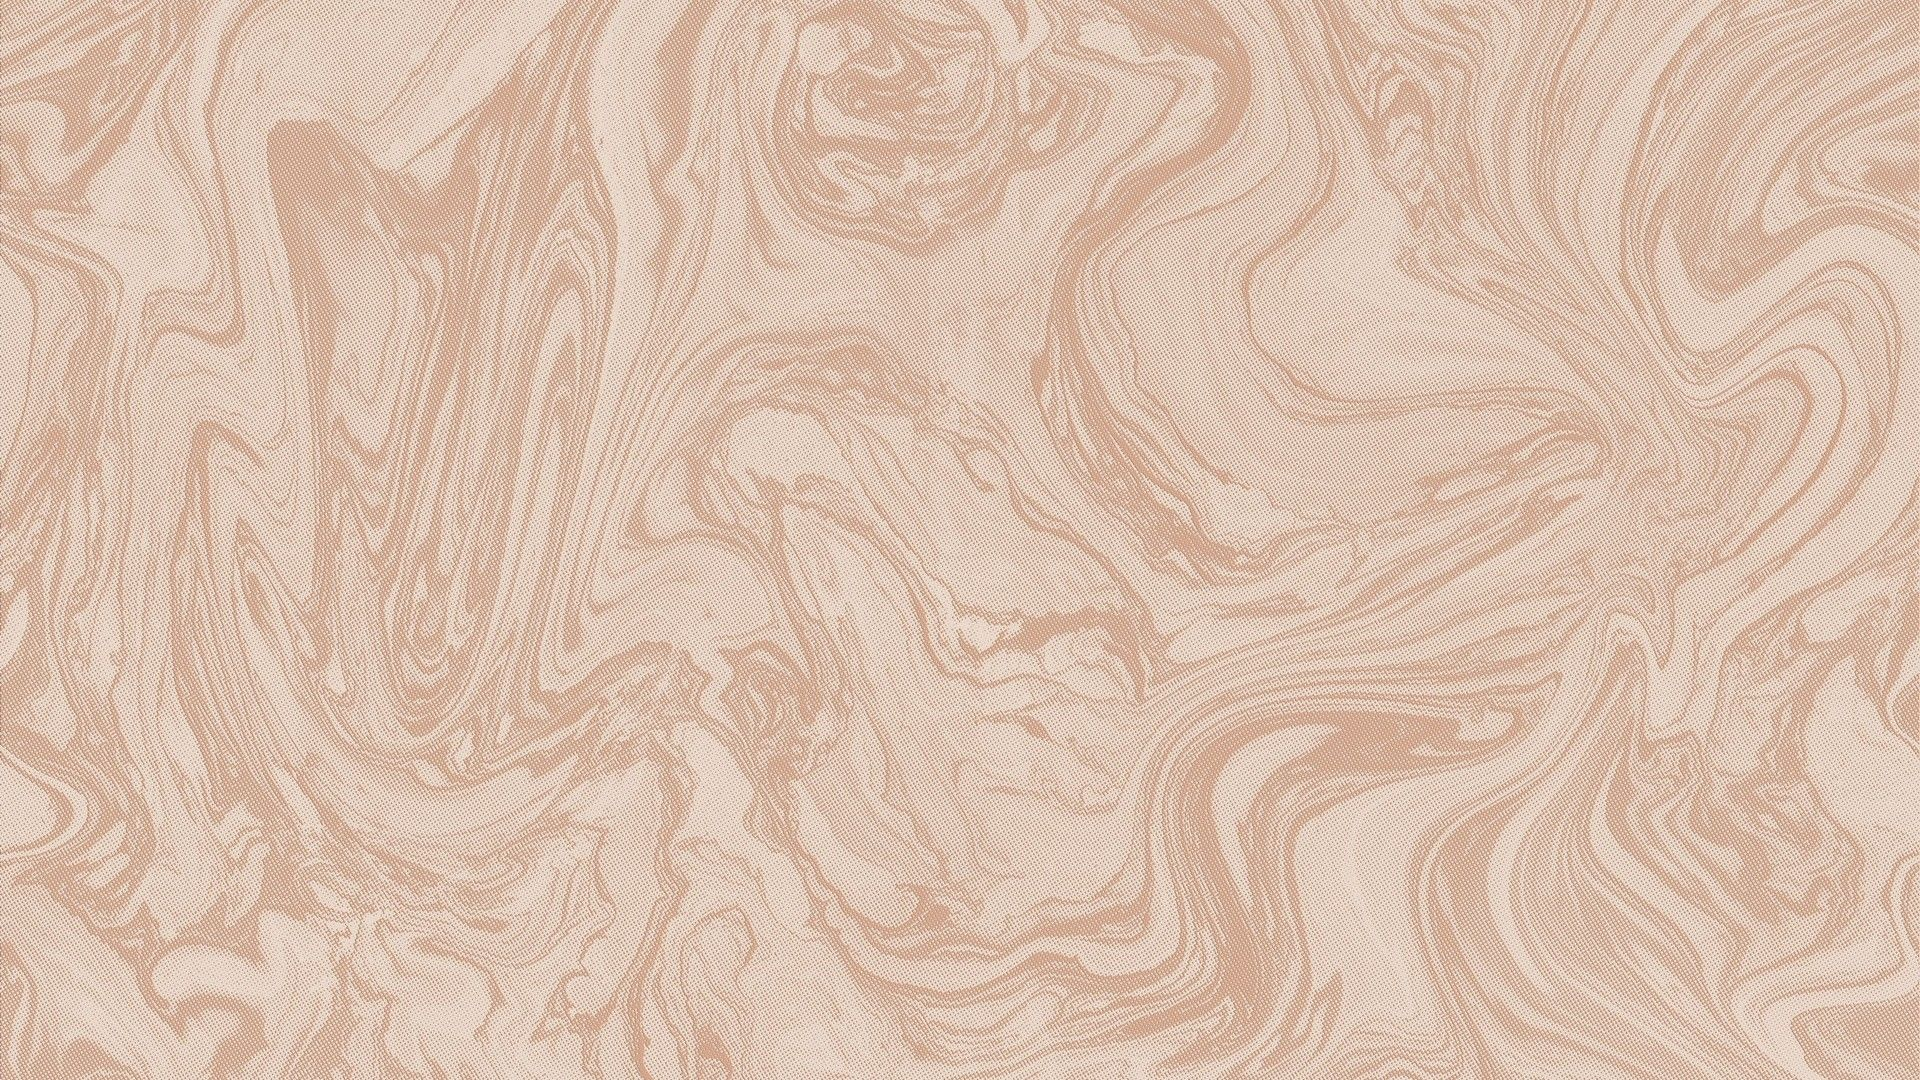 Rose Gold Marble Hd Backgrounds Rose Gold Marble Gold Wallpaper